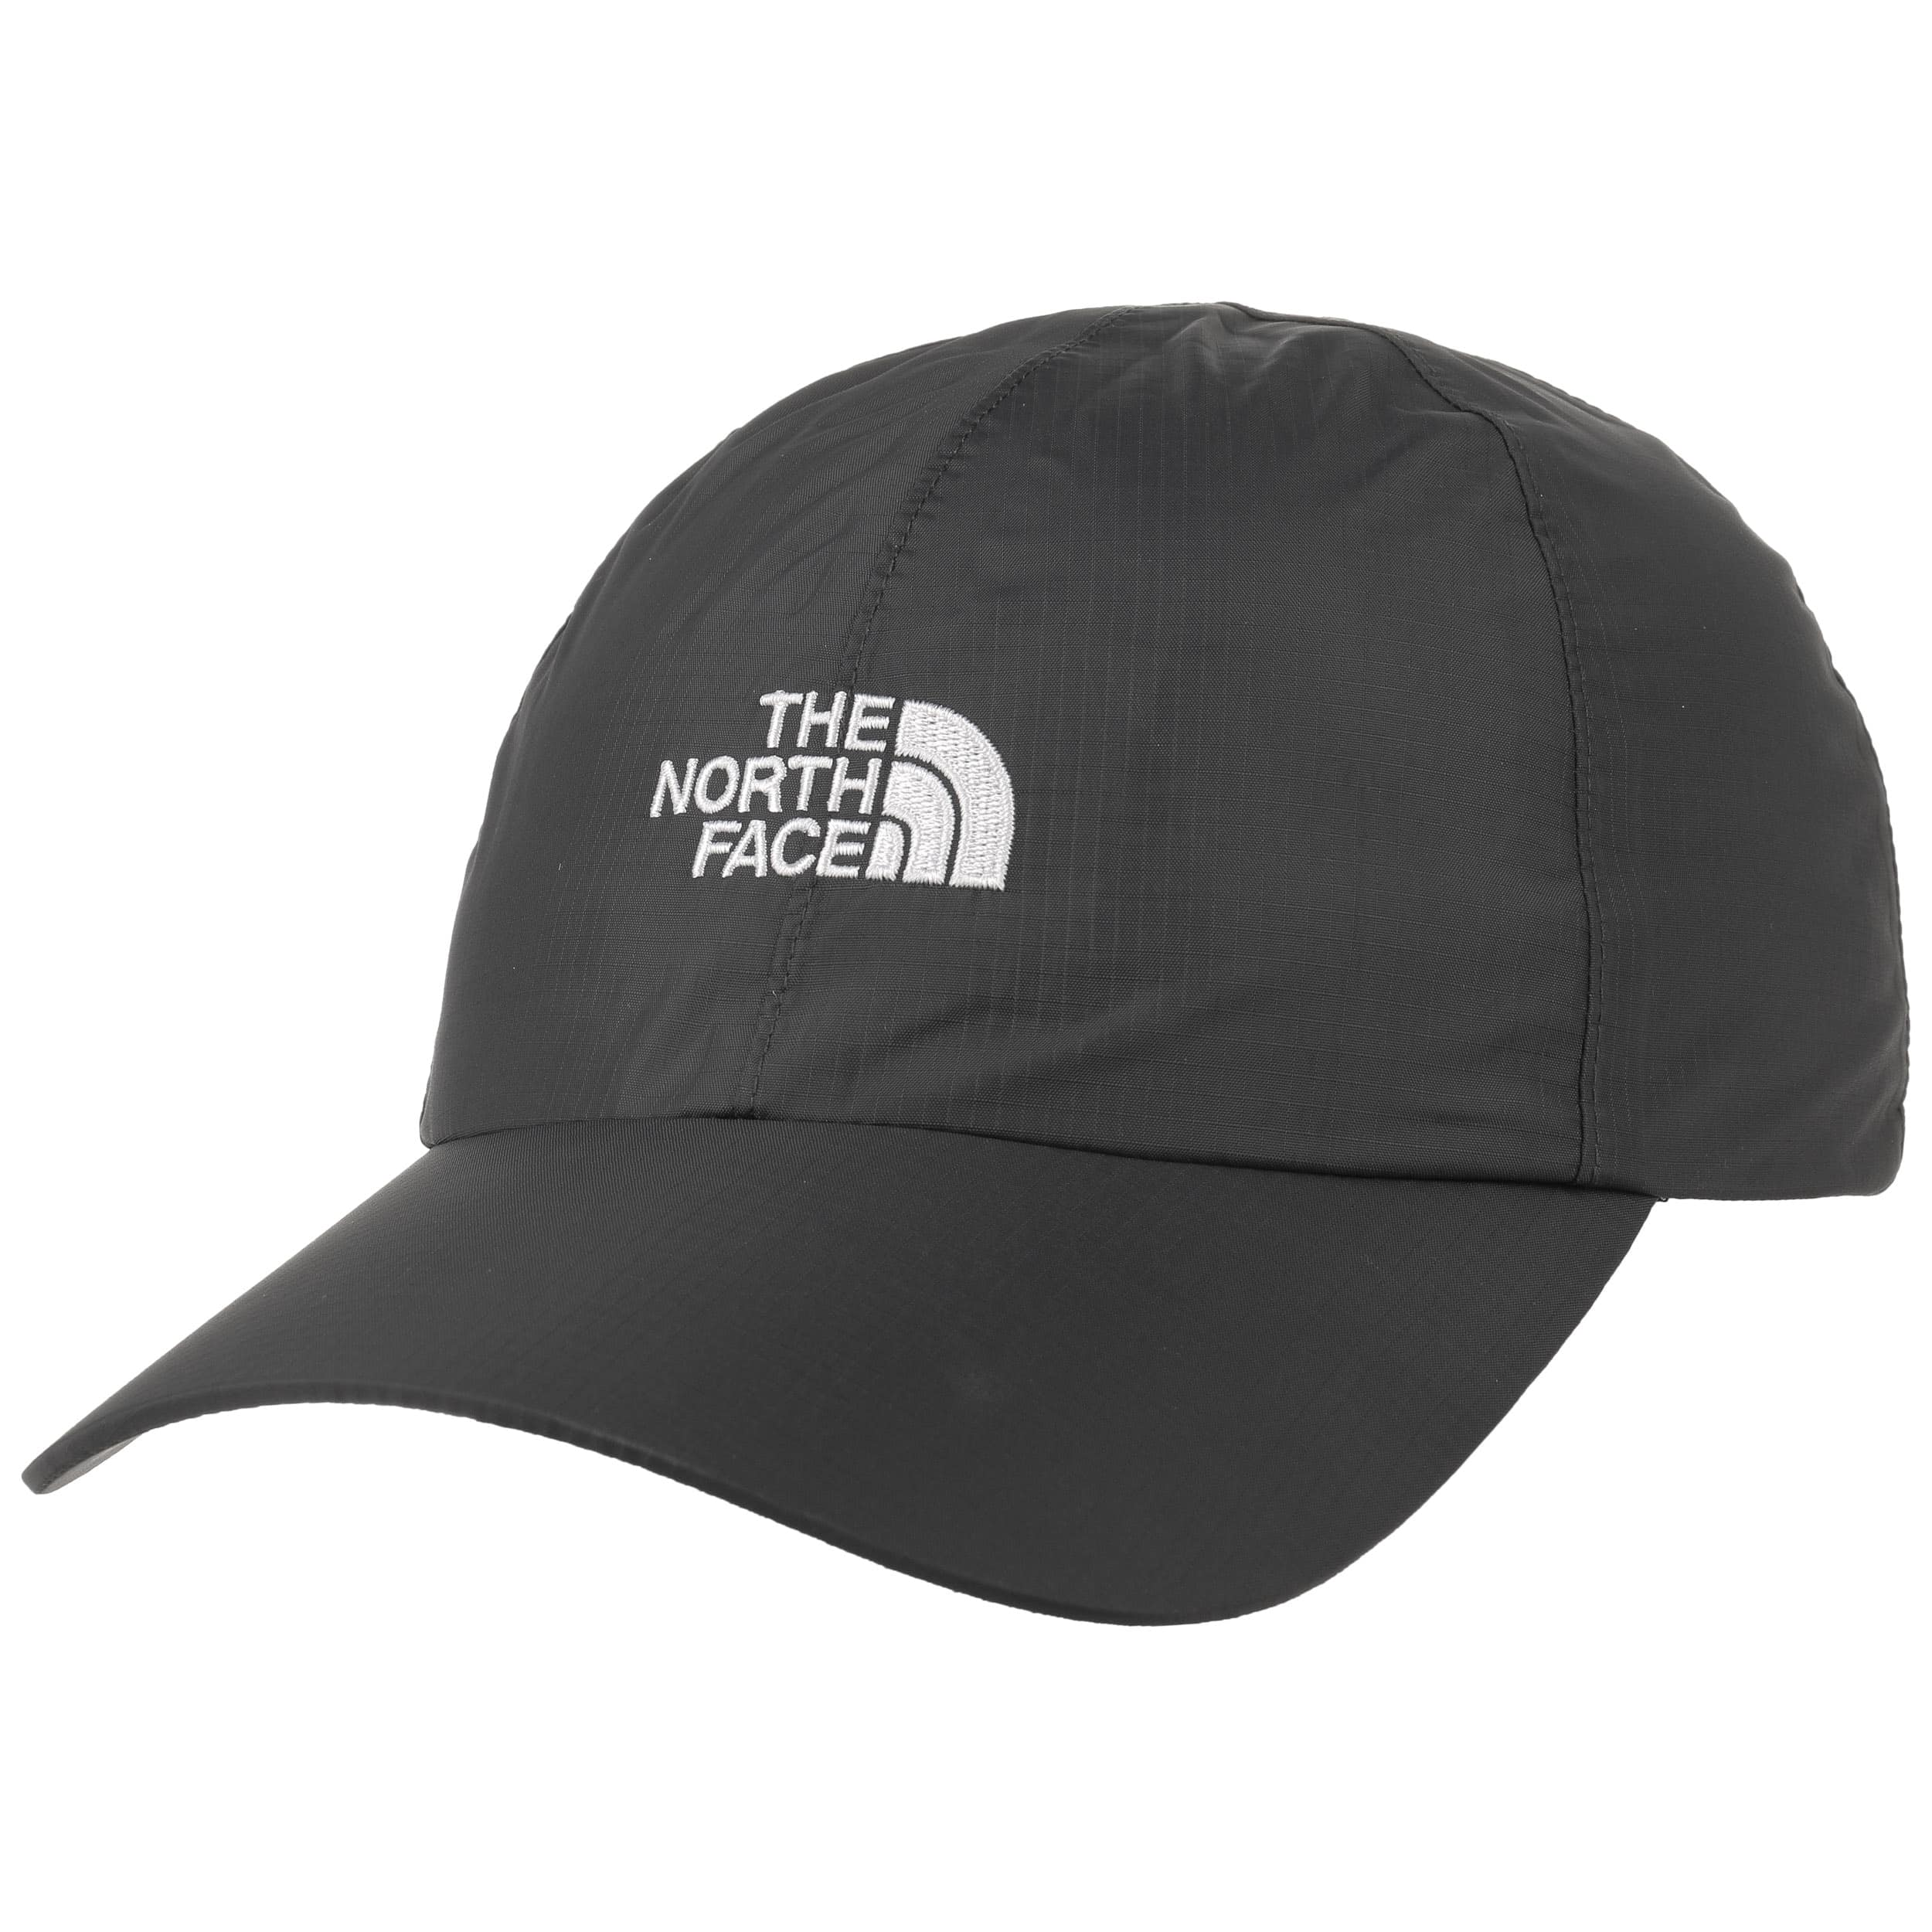 4b49da5d Dryvent Logo Cap by The North Face - 30,95 £